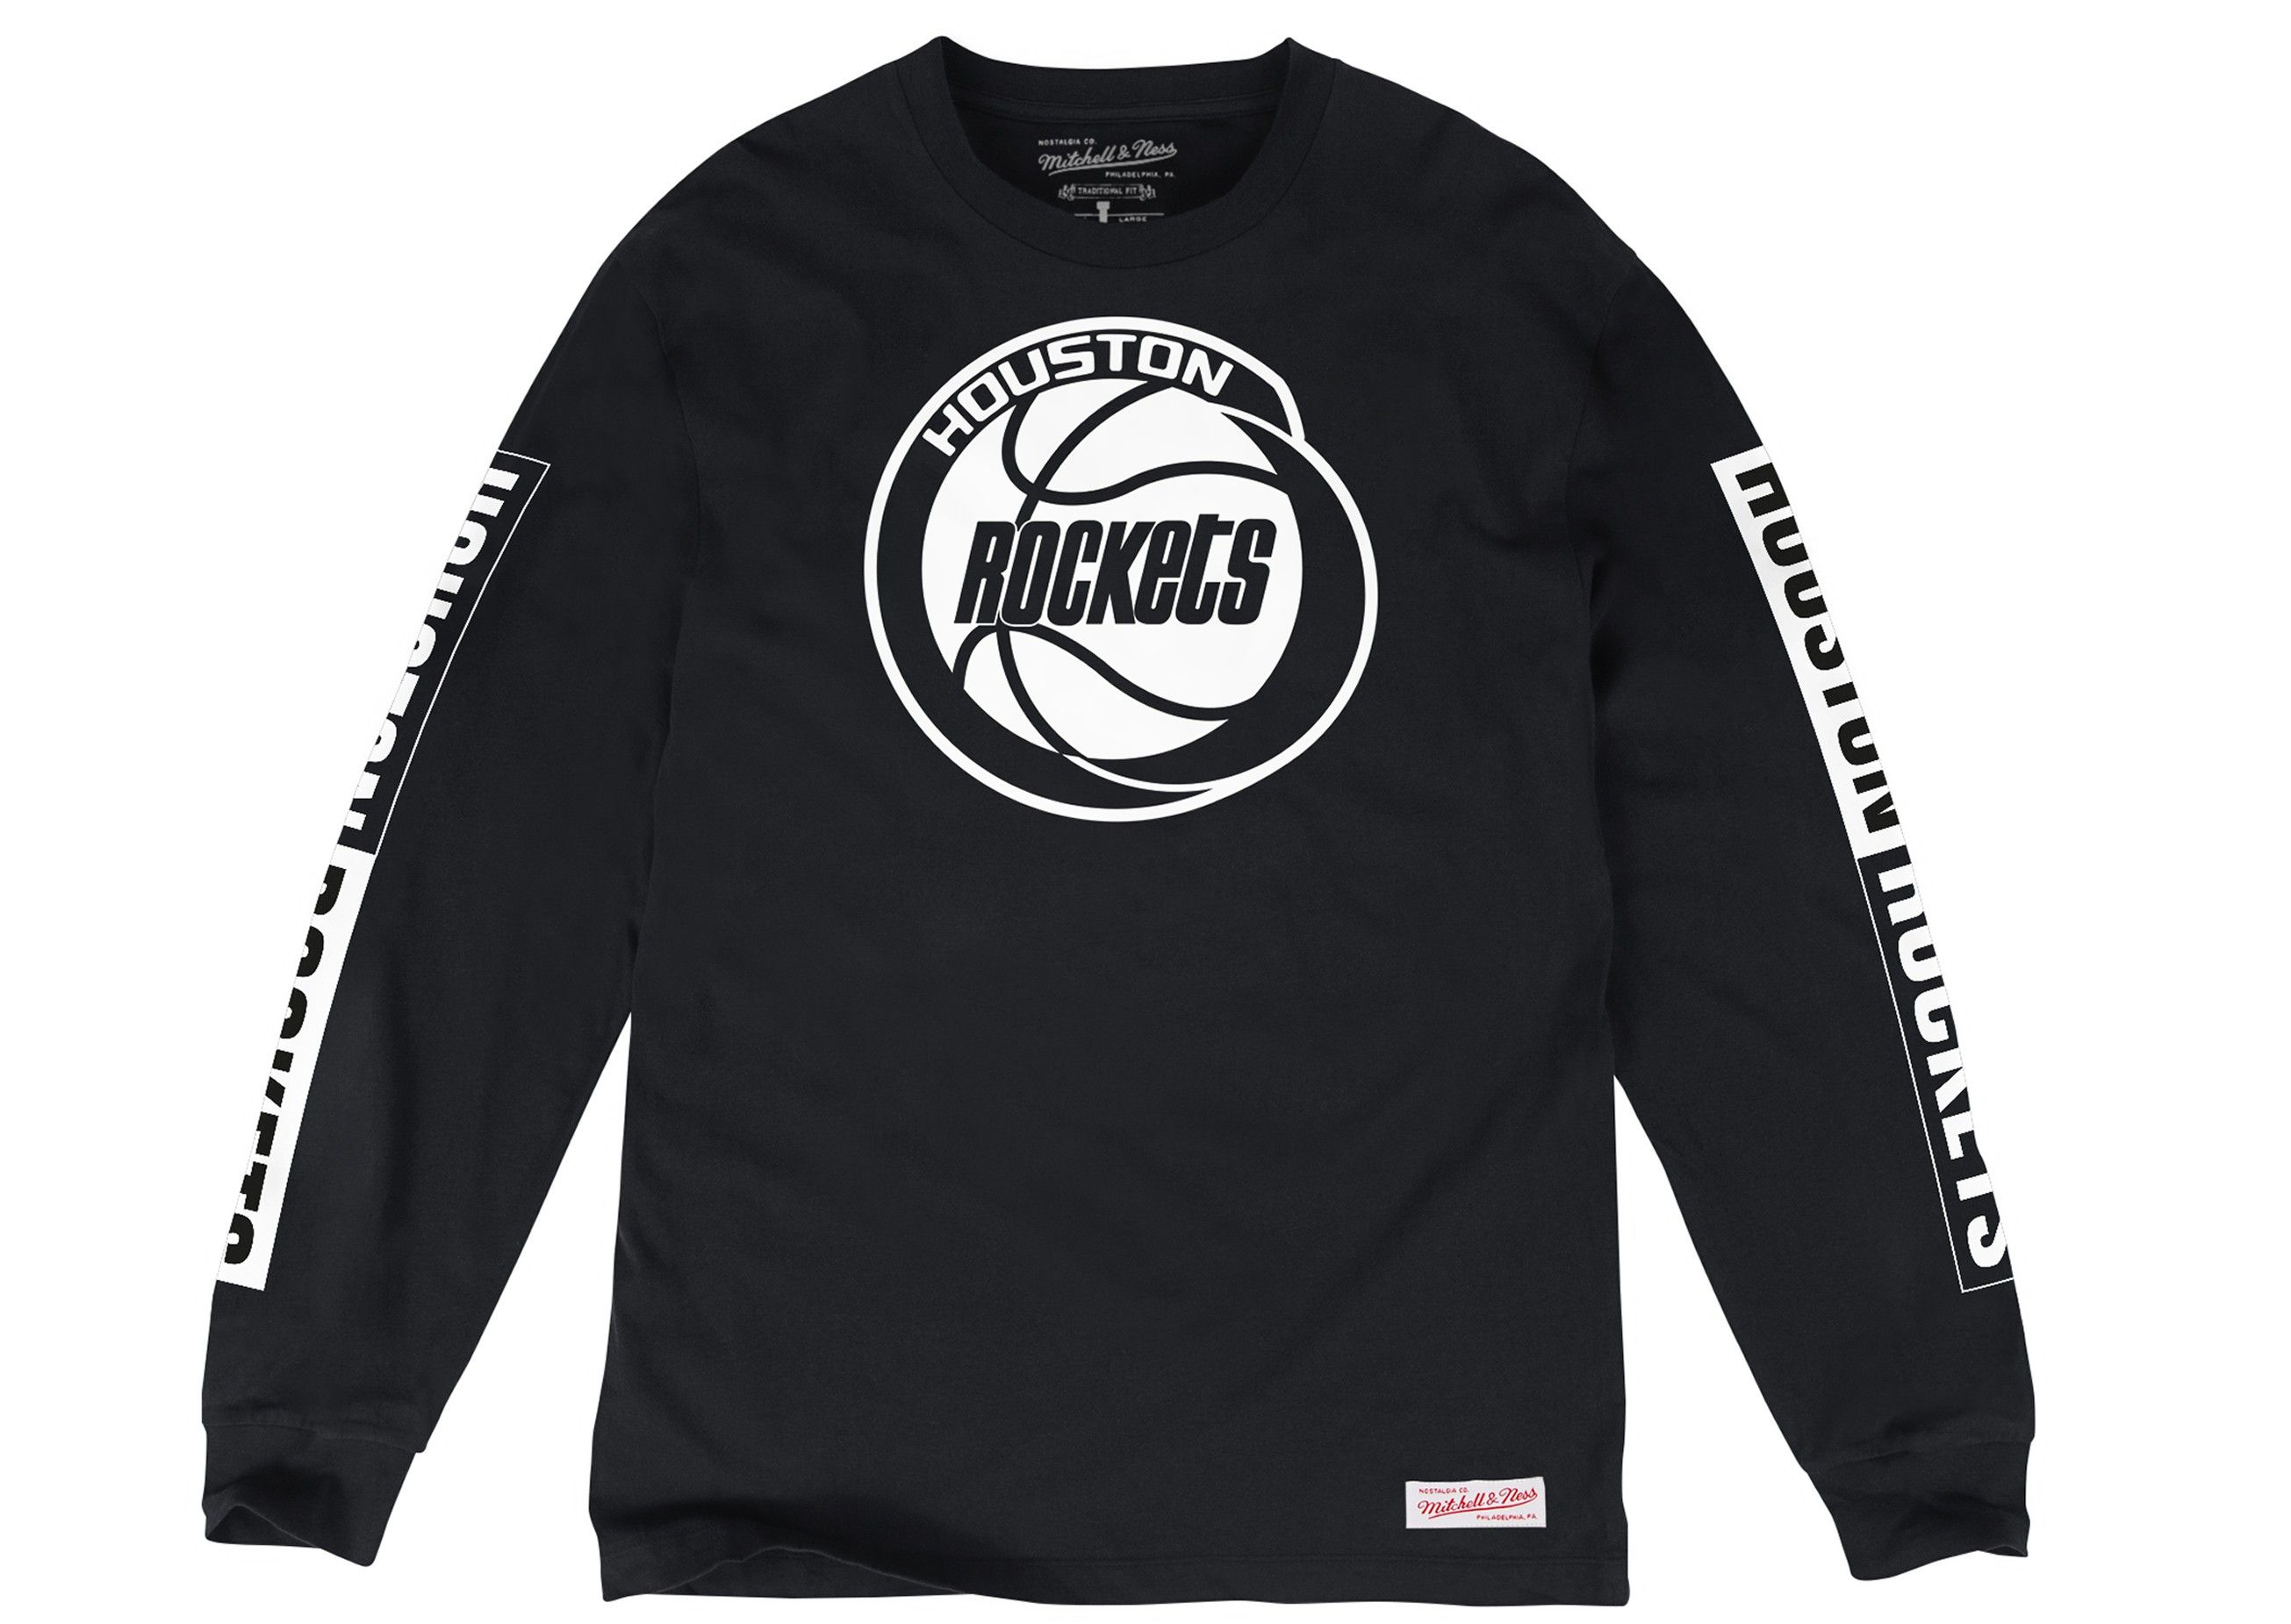 e7dddfc97ca Free Throw Longsleeve Tee Houston Rockets - Shop Mitchell   Ness NBA Shirts  and Apparel